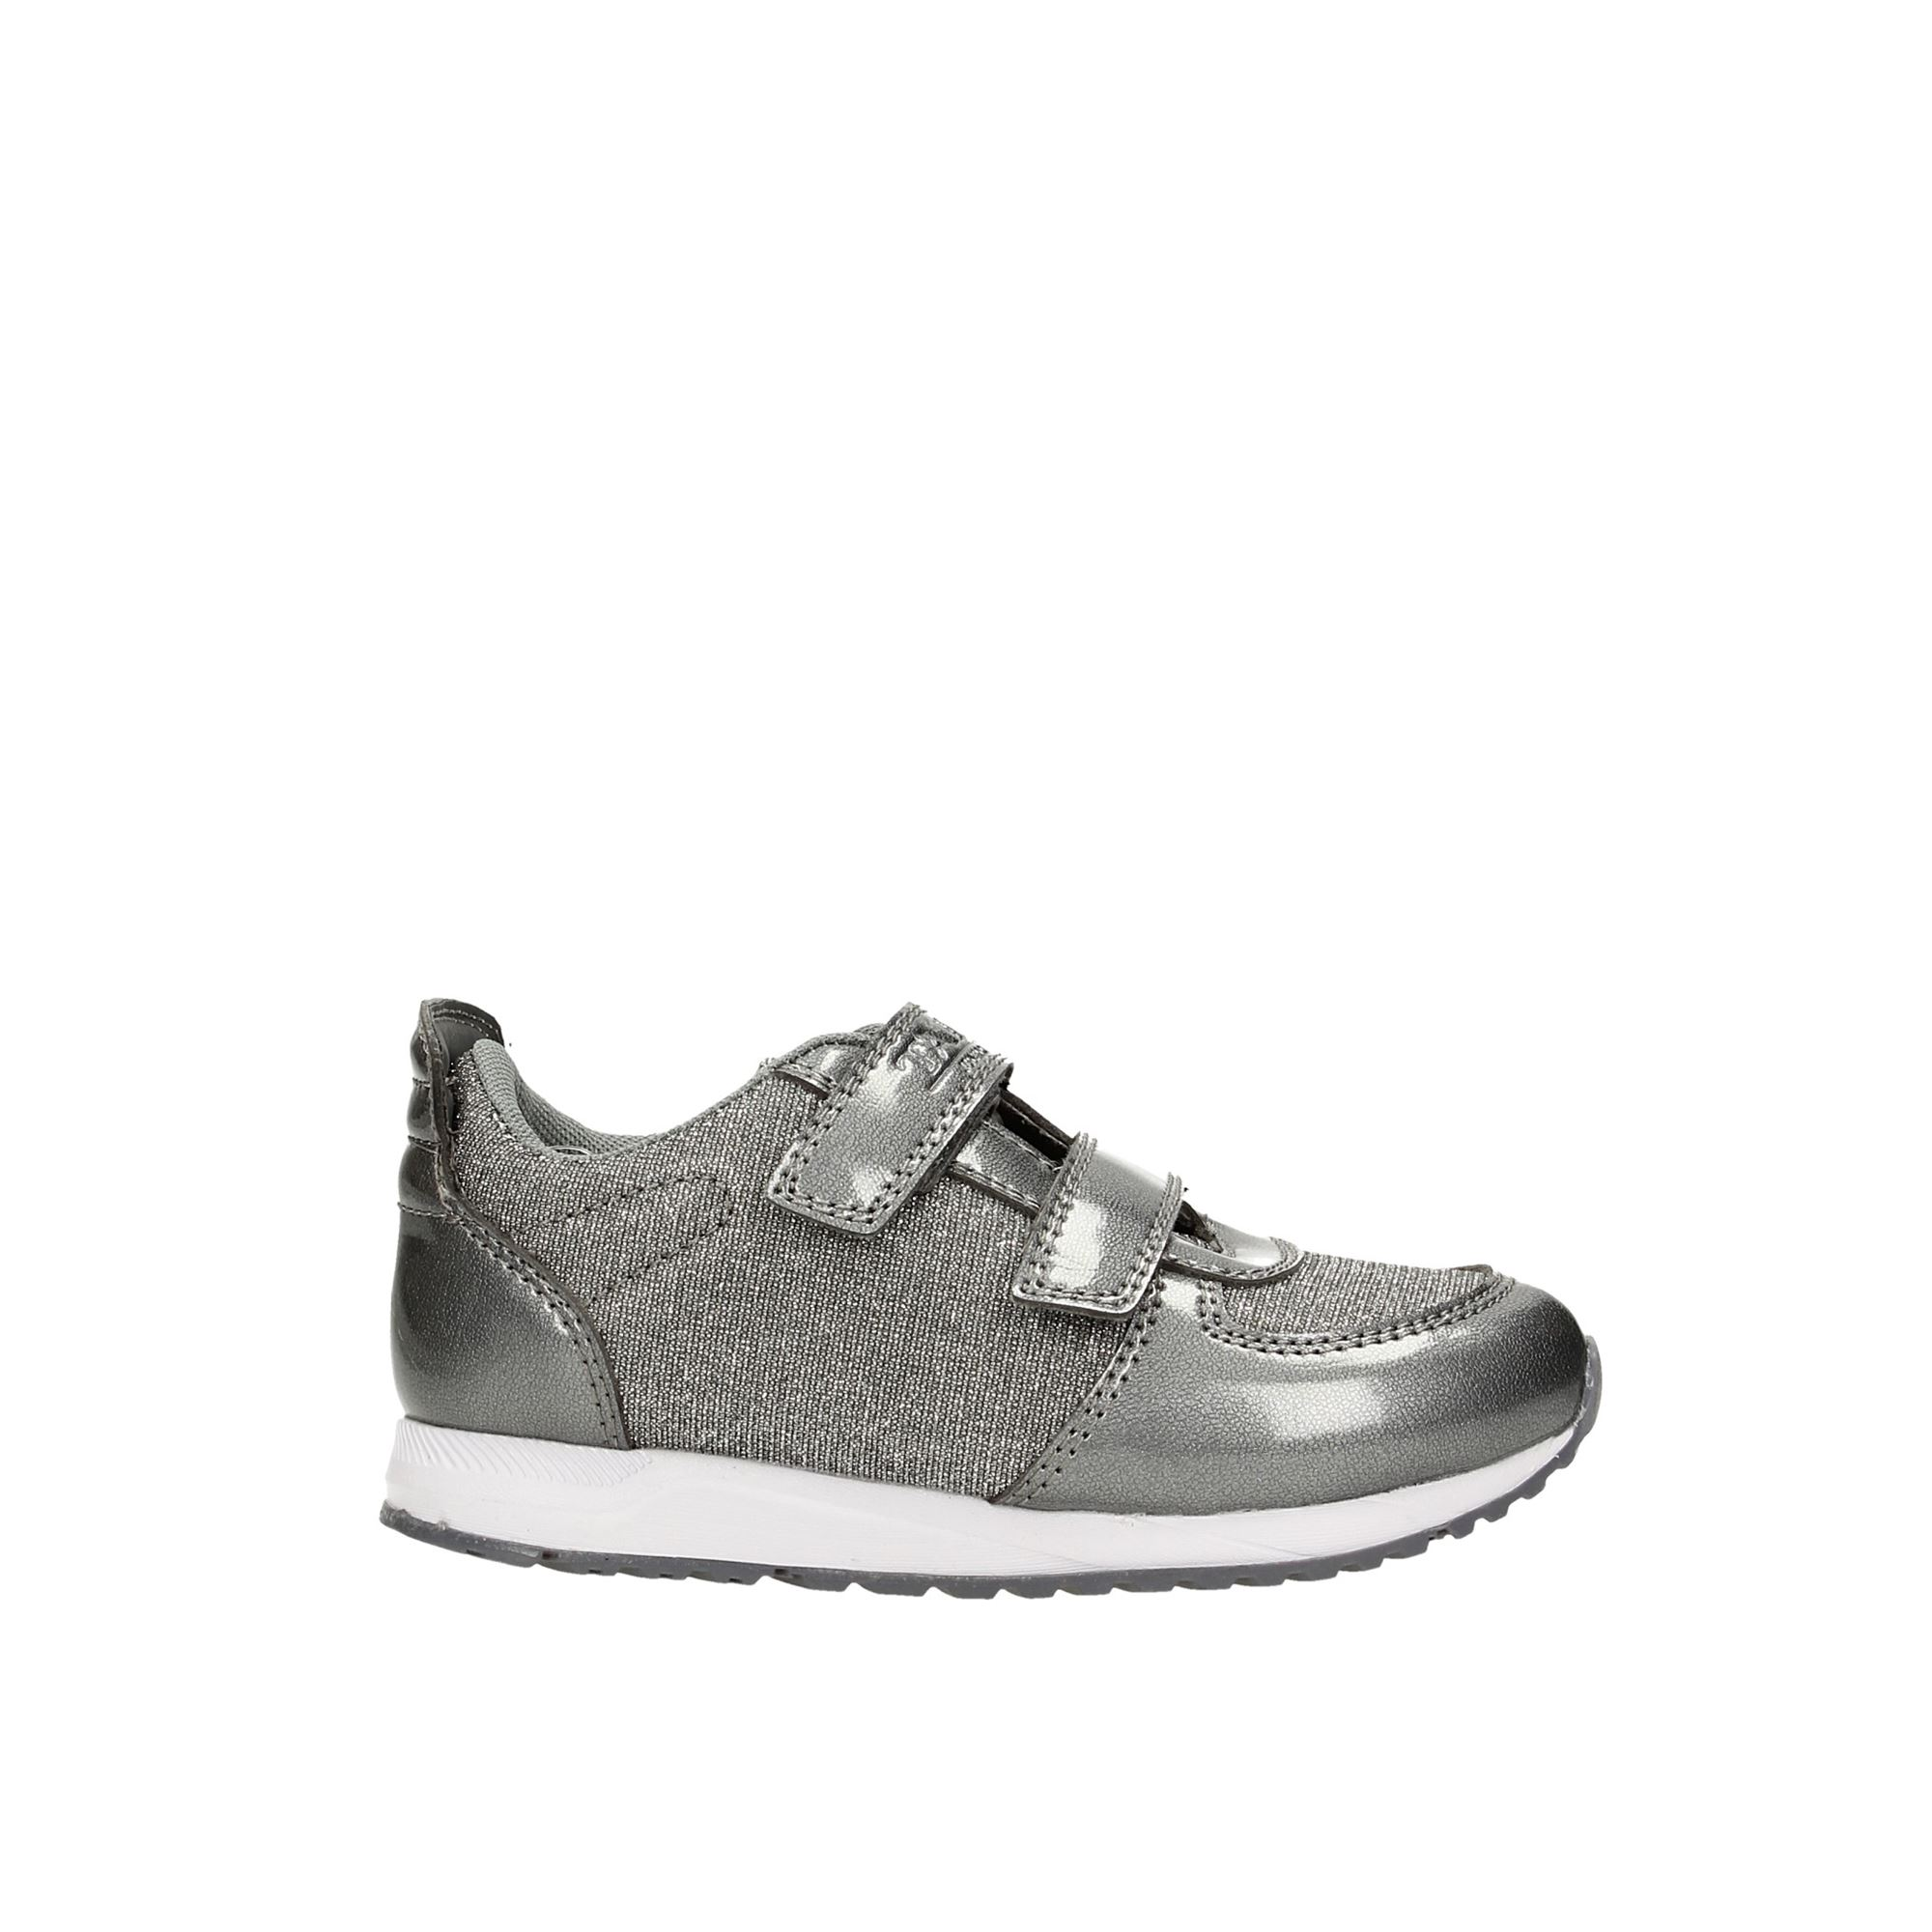 Tata Italia Shoes Junior Sneakers Dk Silver K171365-B48